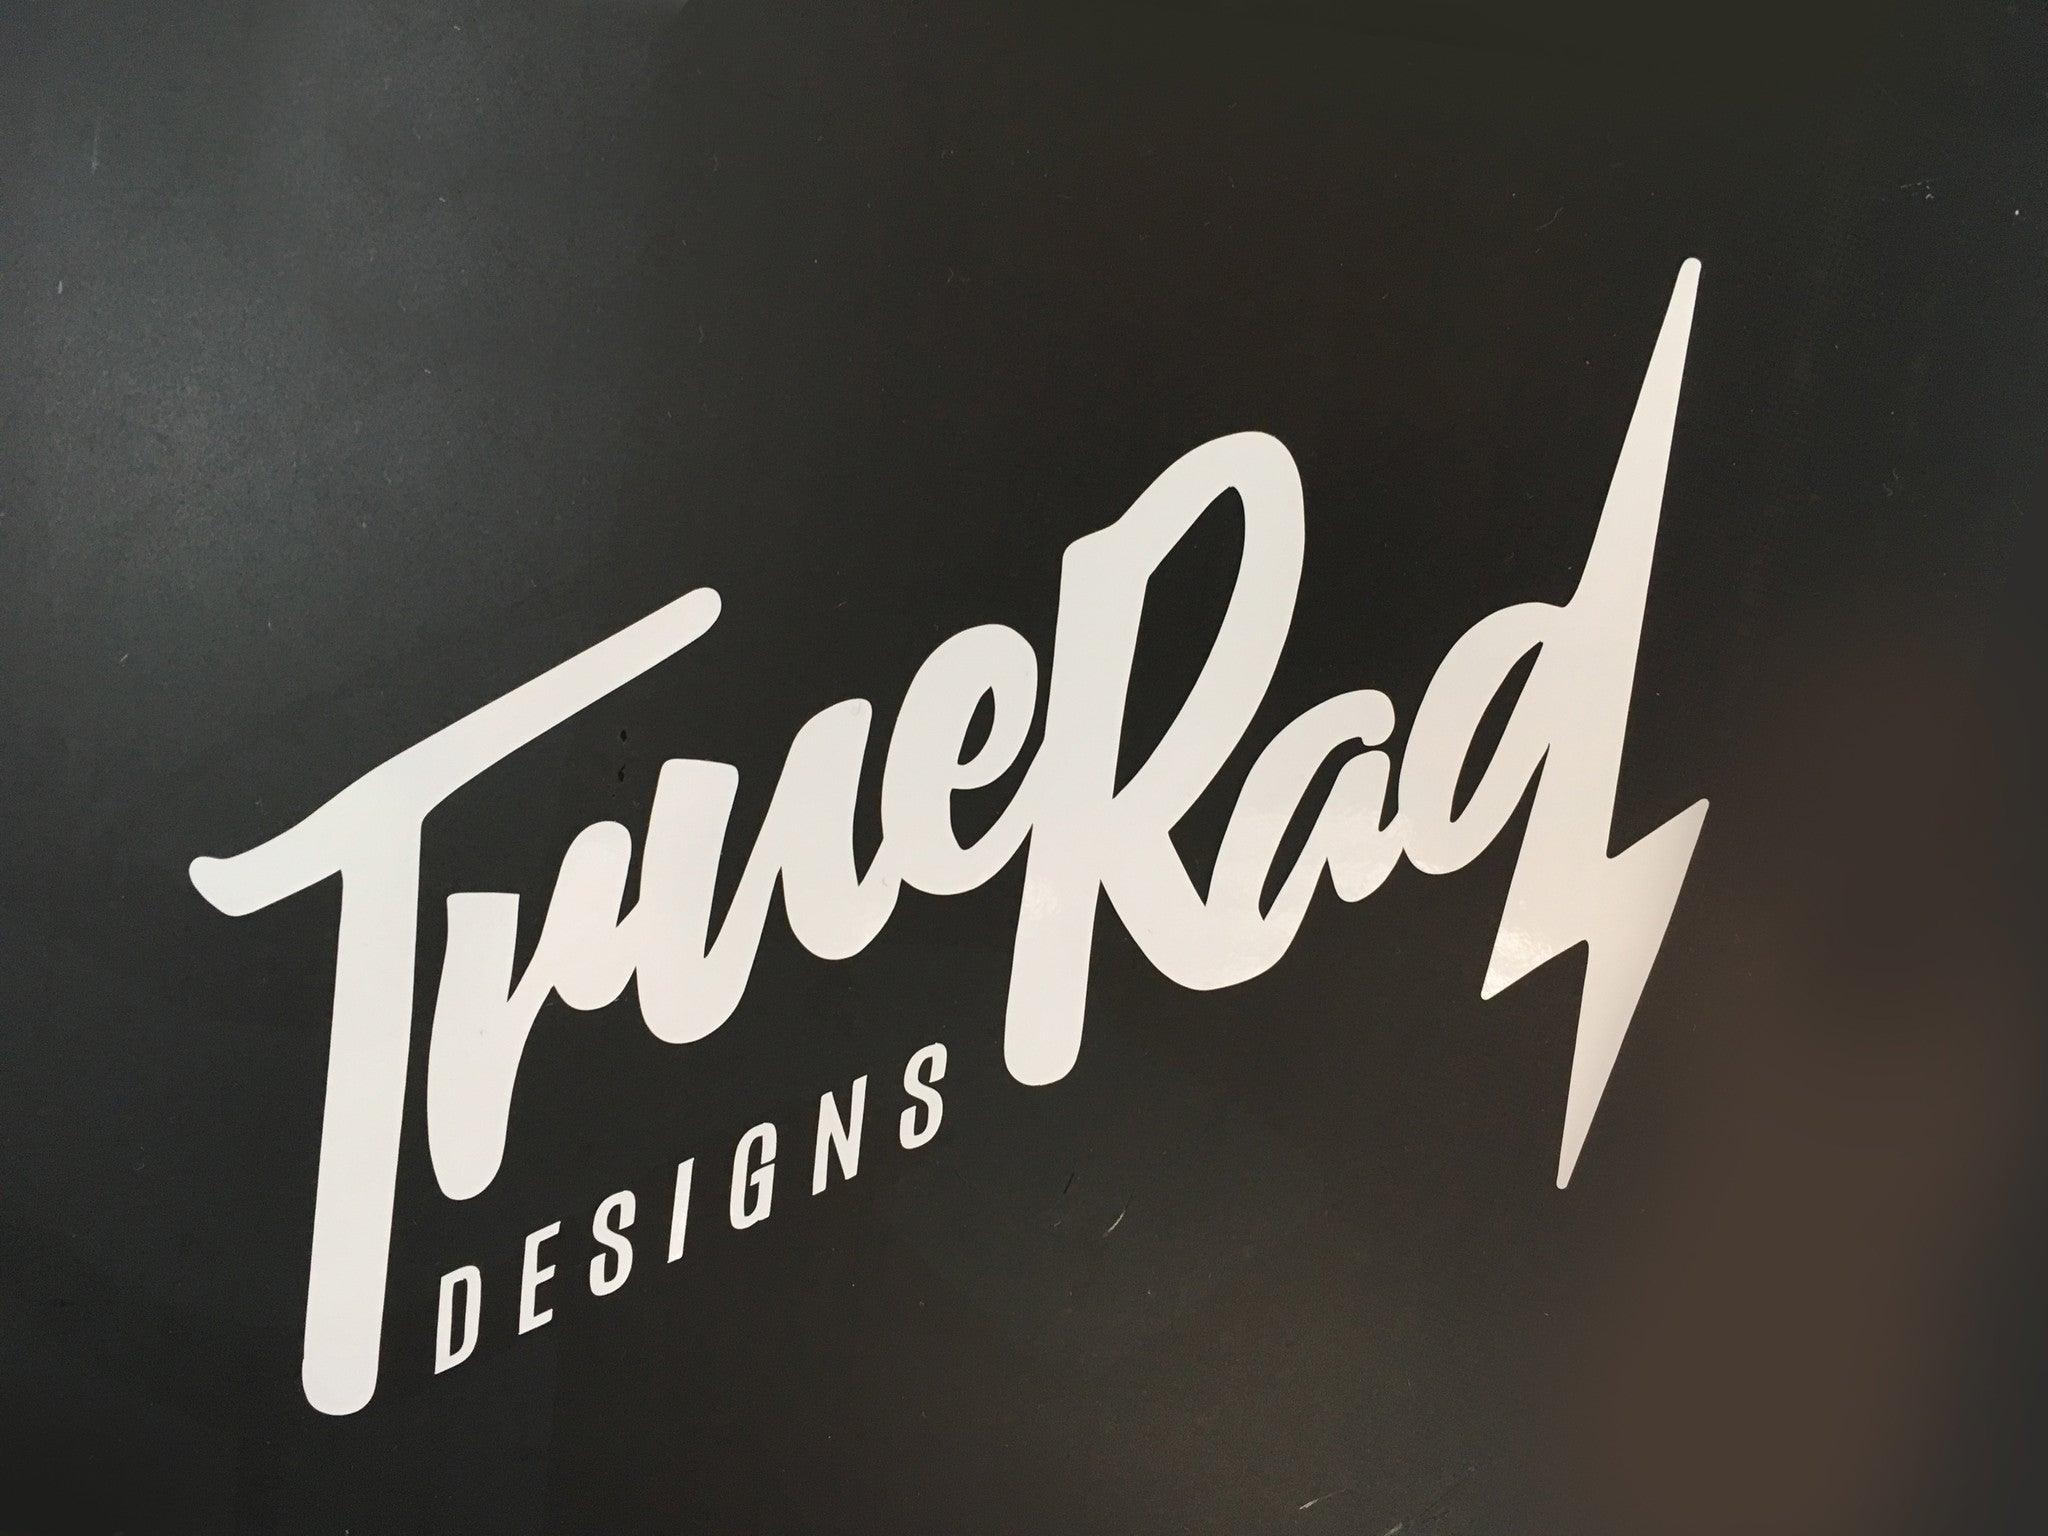 TrueRad White Decal Stickers